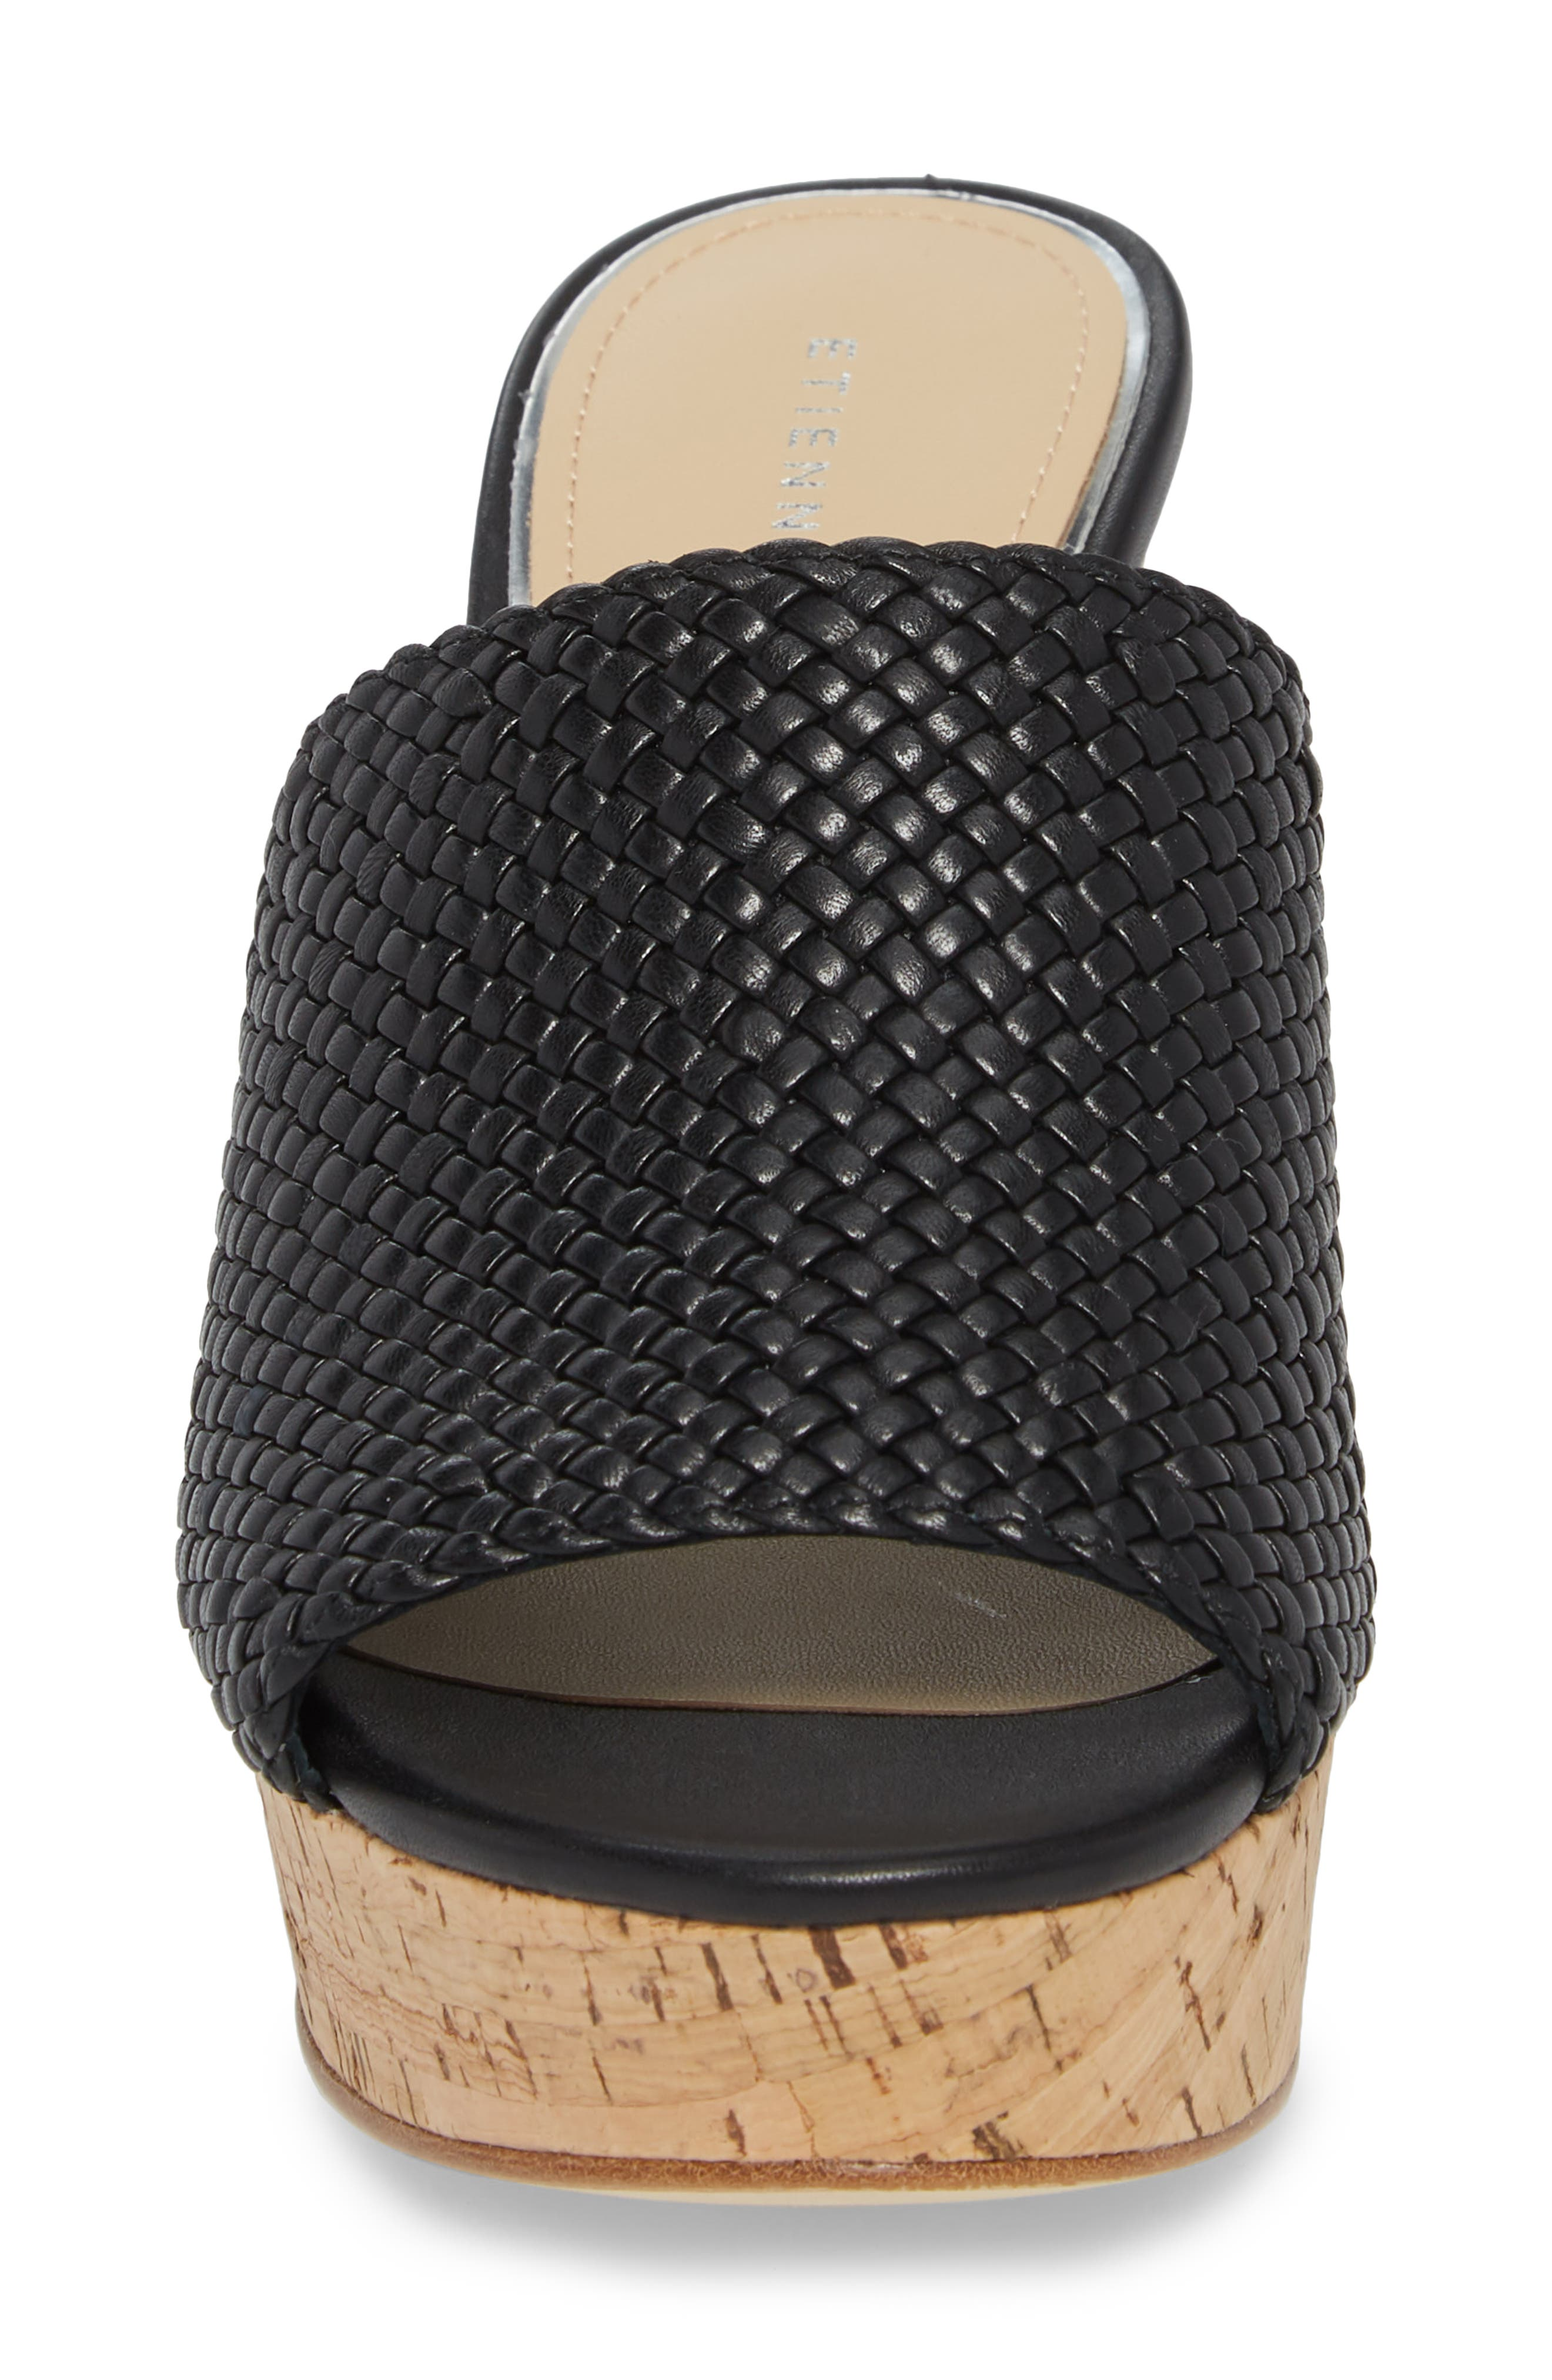 Daiquiri Wedge Mule,                             Alternate thumbnail 4, color,                             BLACK LEATHER